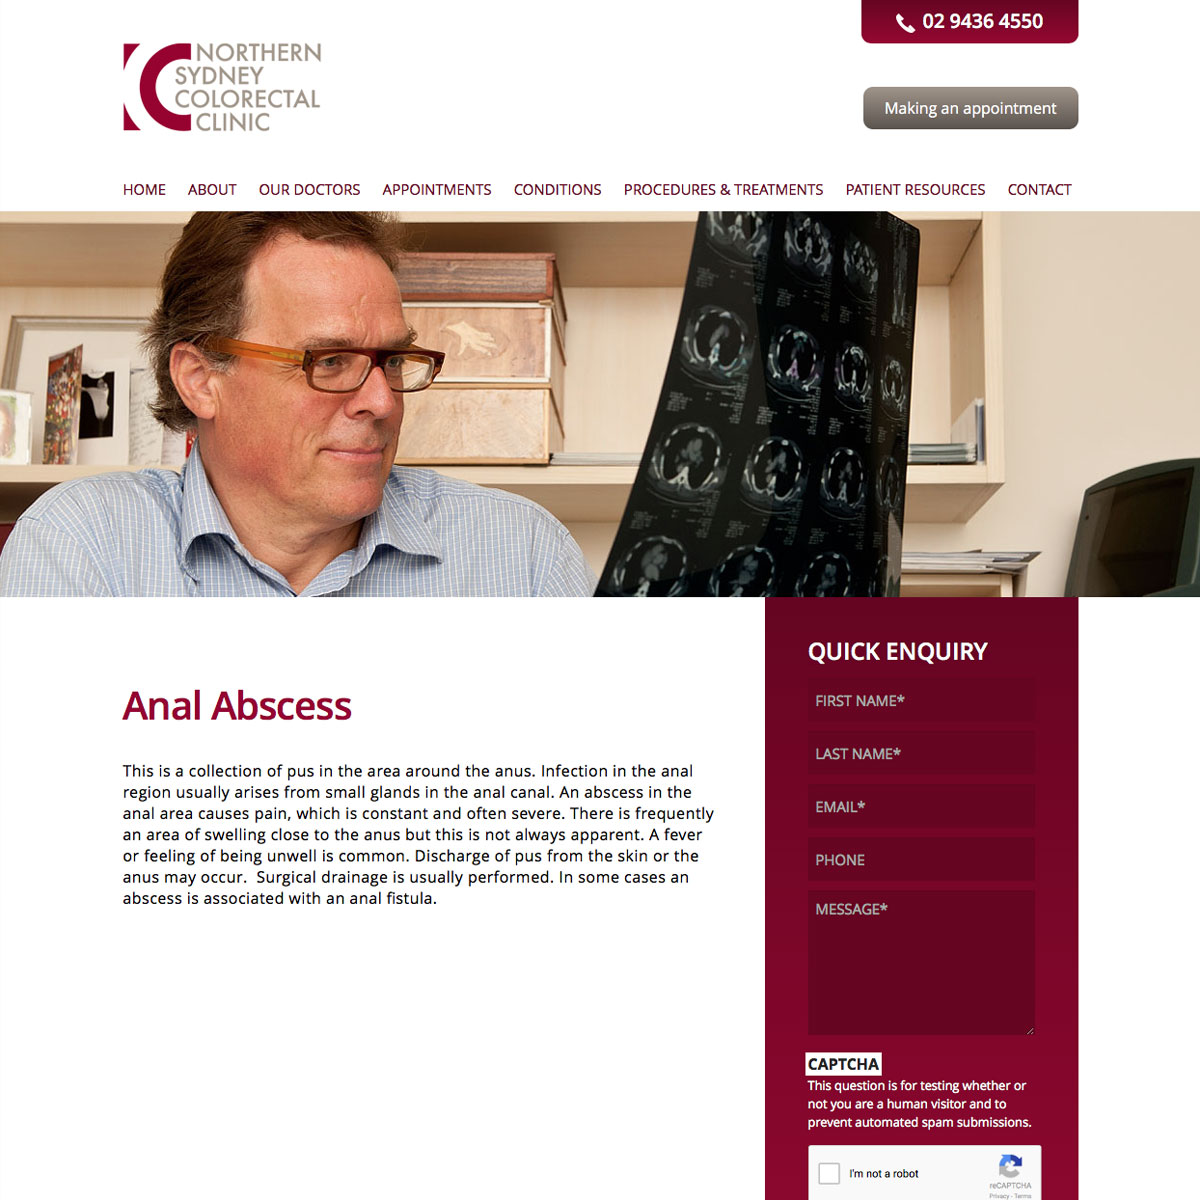 Northern Sydney Colorectal Clinic Content Page